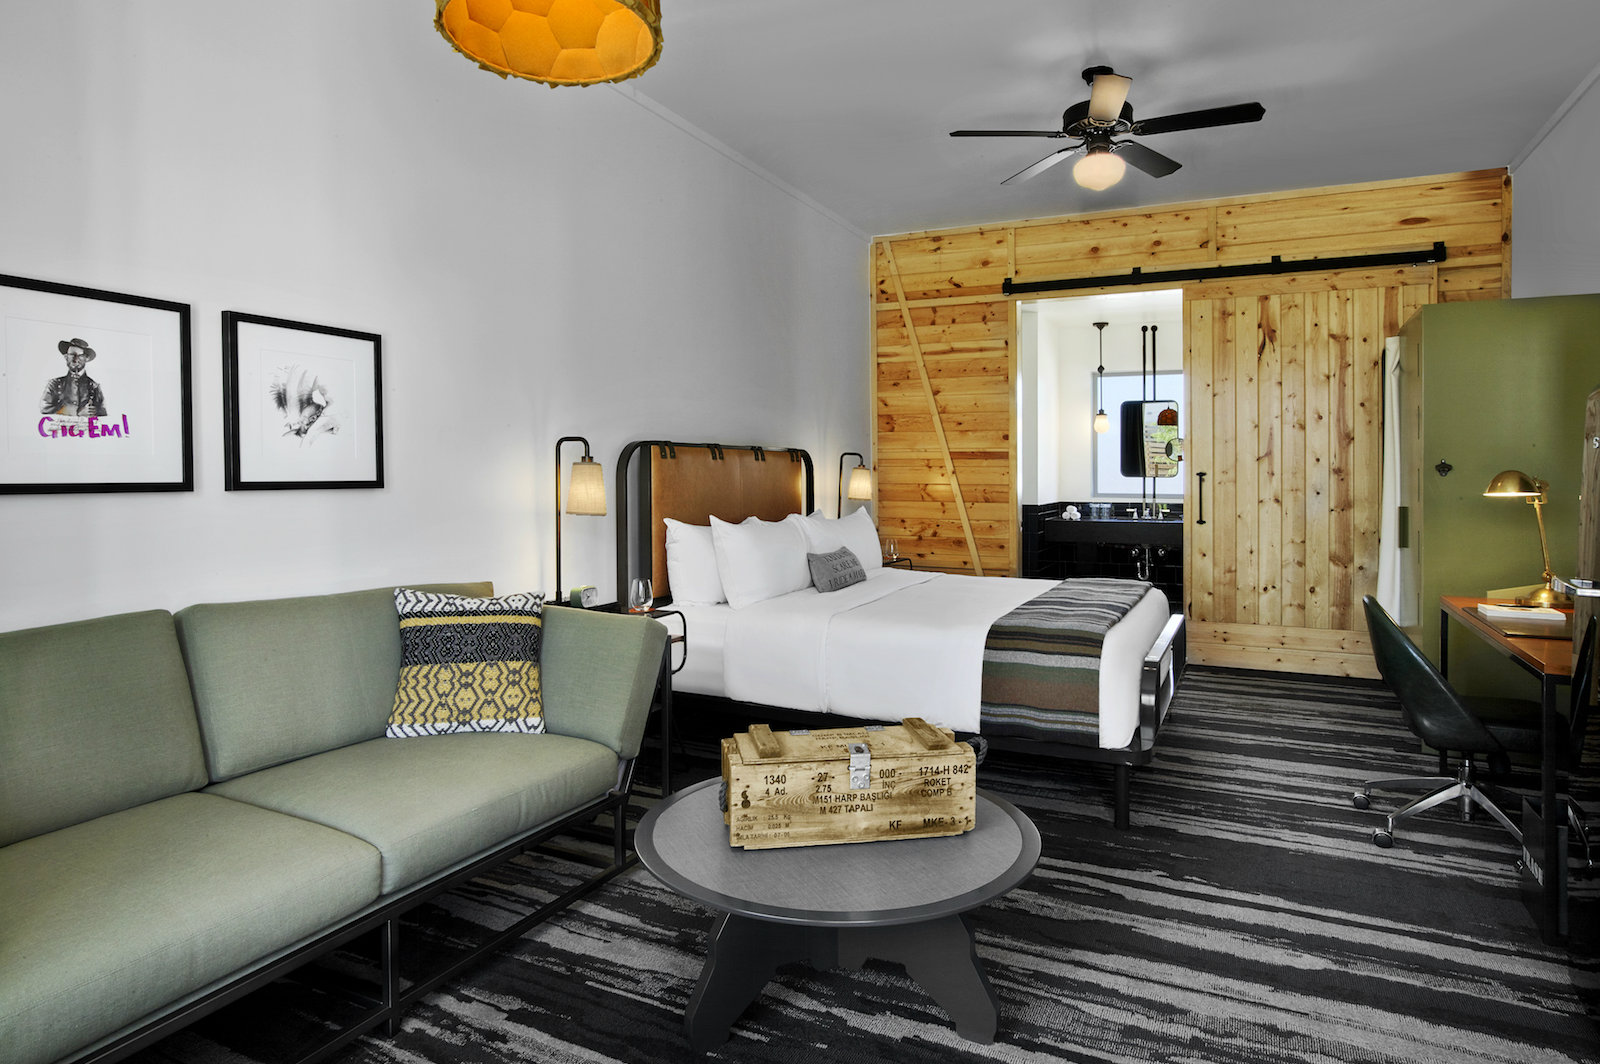 Comfort and Luxury Meet At The Cavalry Court in College Station